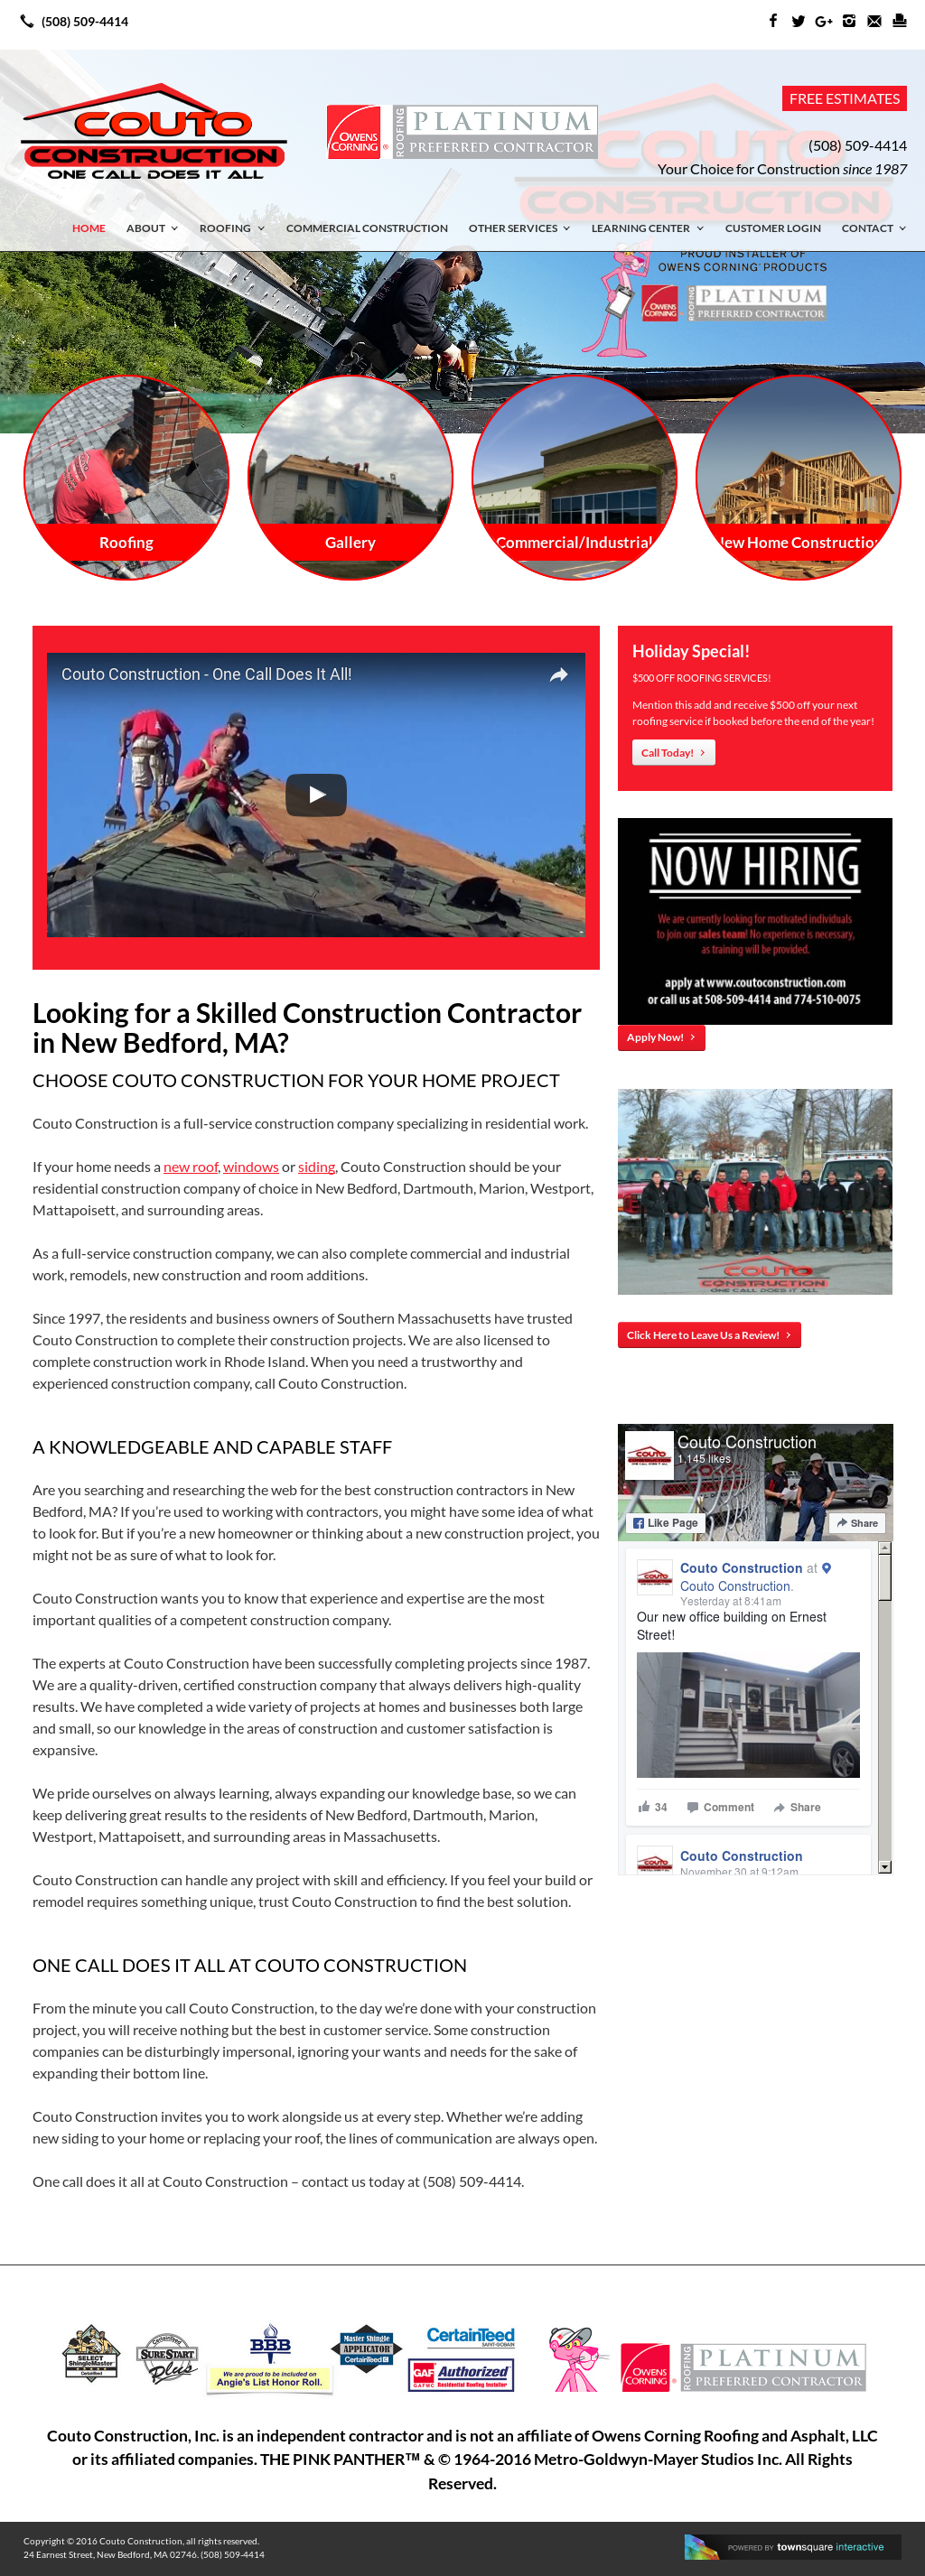 Couto Construction Competitors, Revenue and Employees